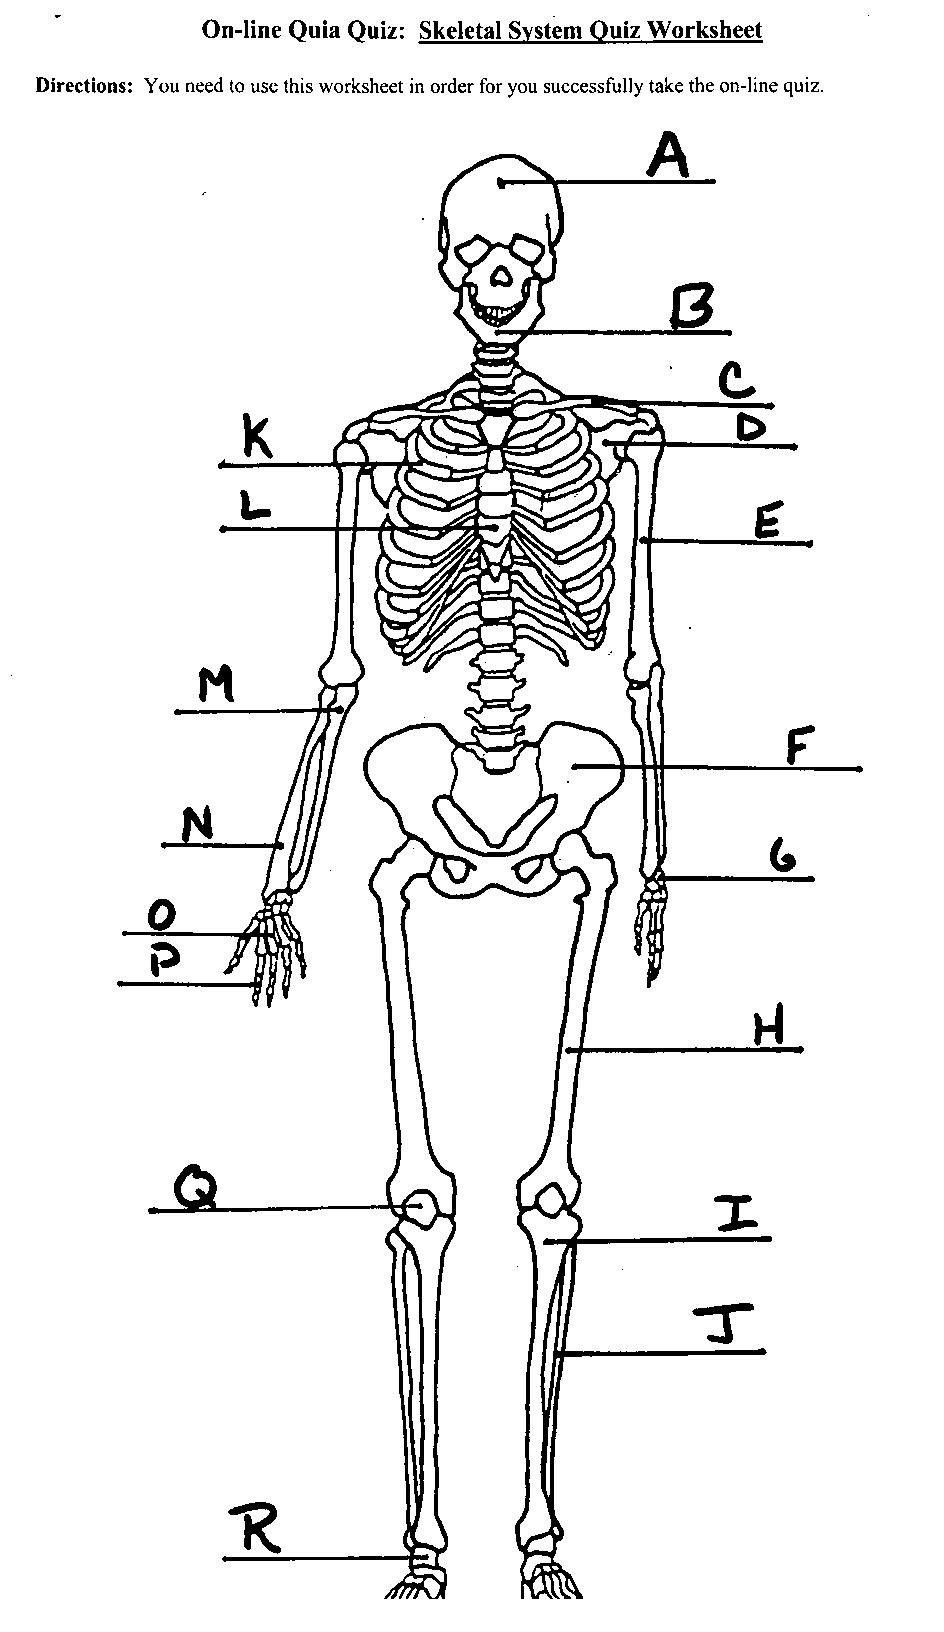 Unlabeled Human Skeleton Diagram . Unlabeled Human